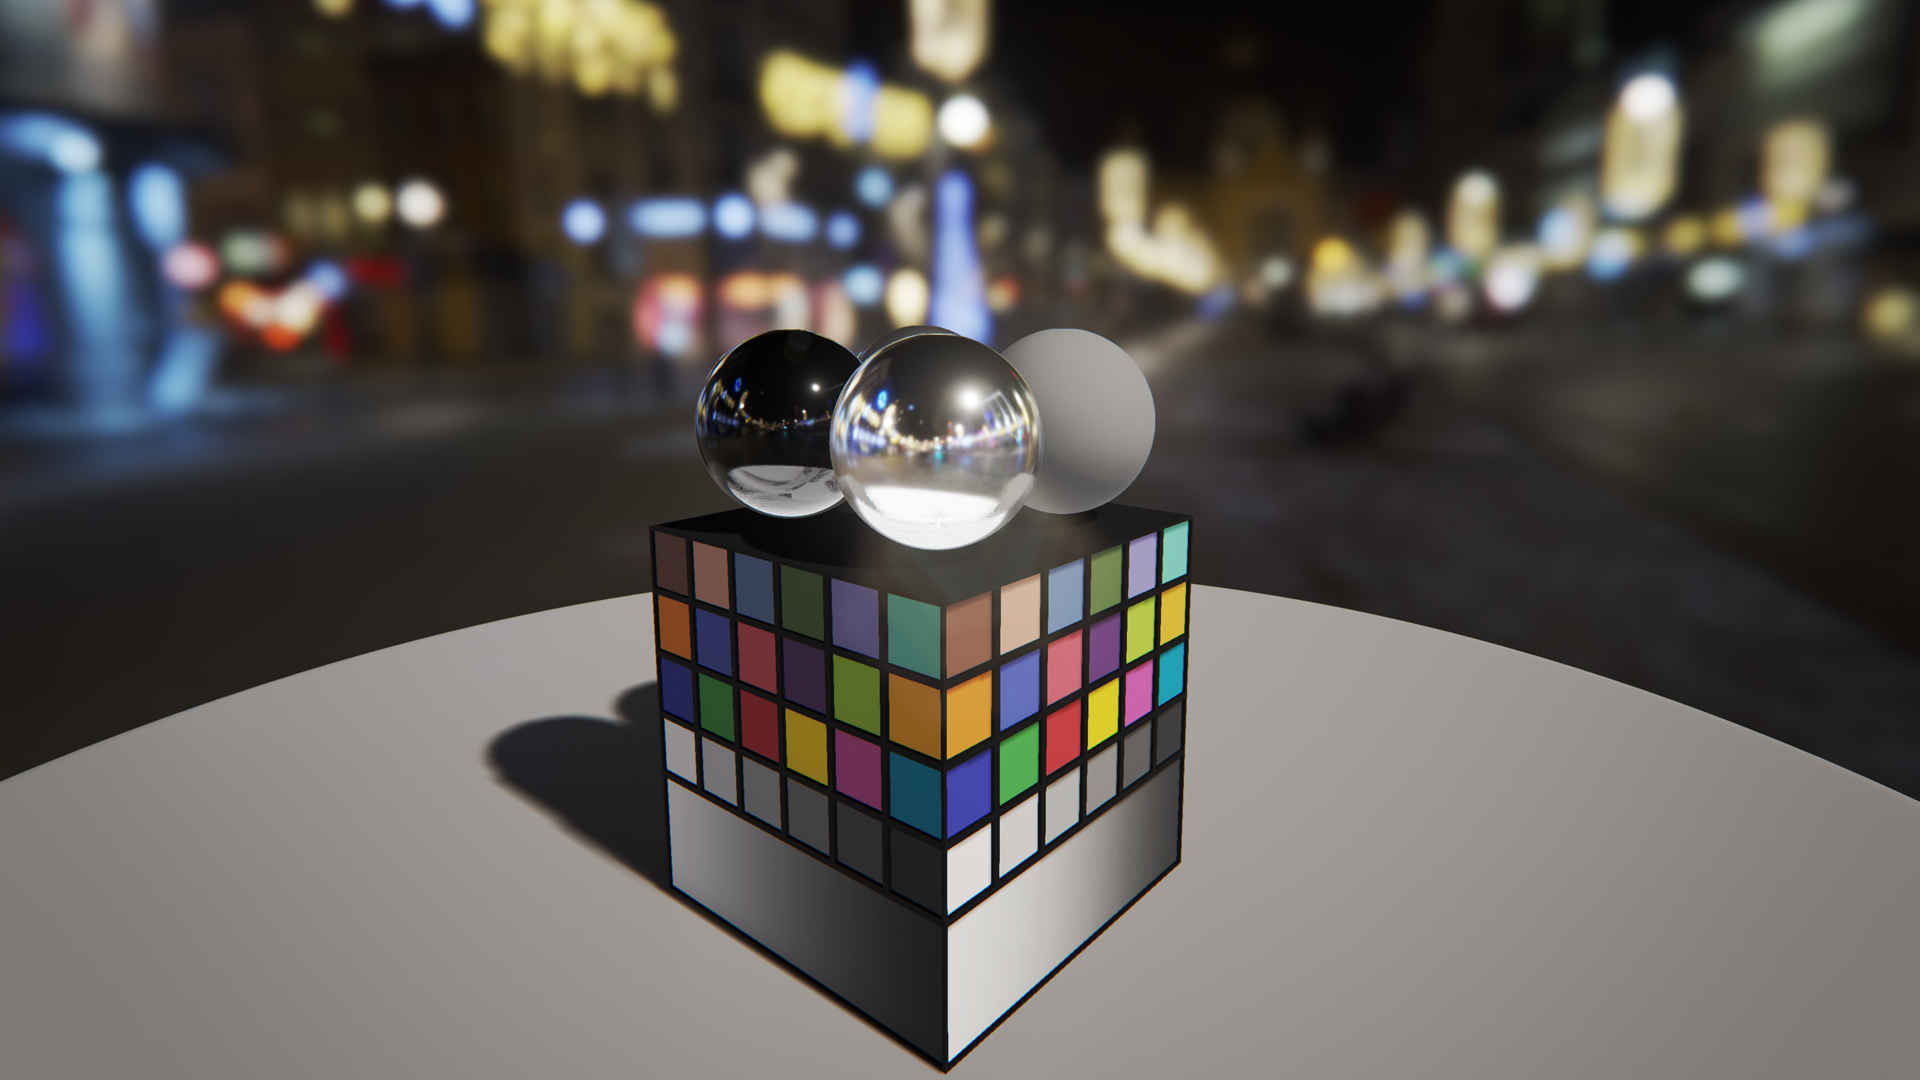 32 HDRIs Lighting Environments by Joost Vanhoutte